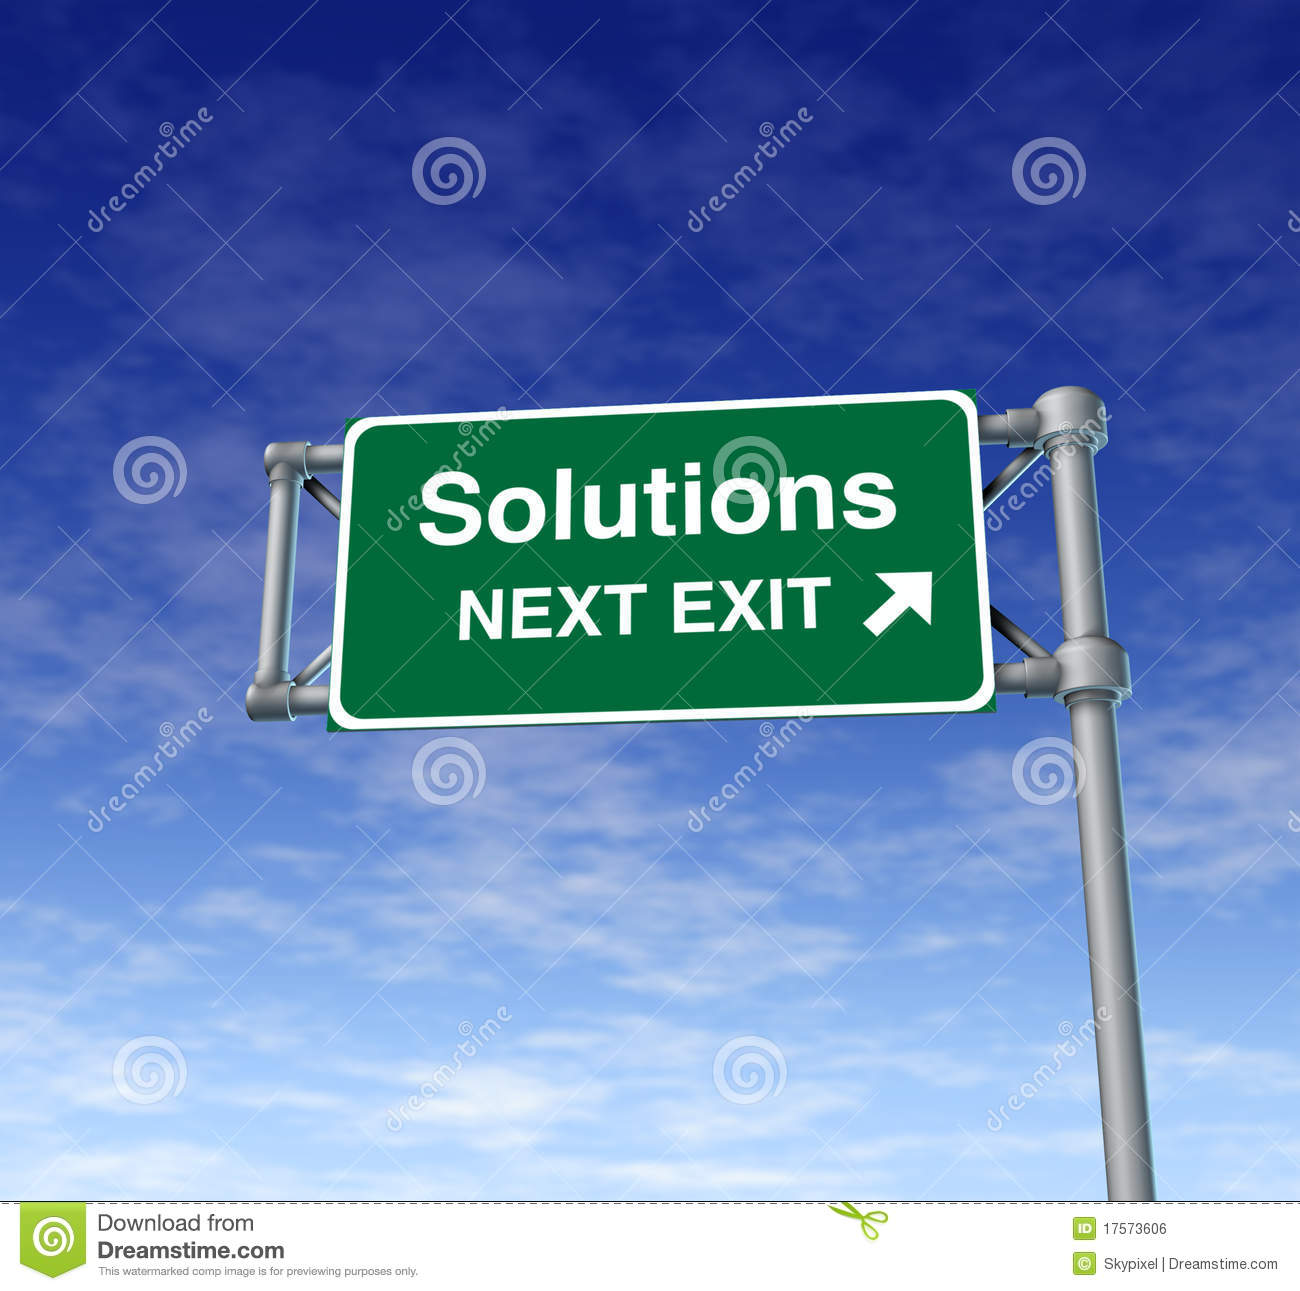 Solutions Freeway Exit Sign highway street symbol